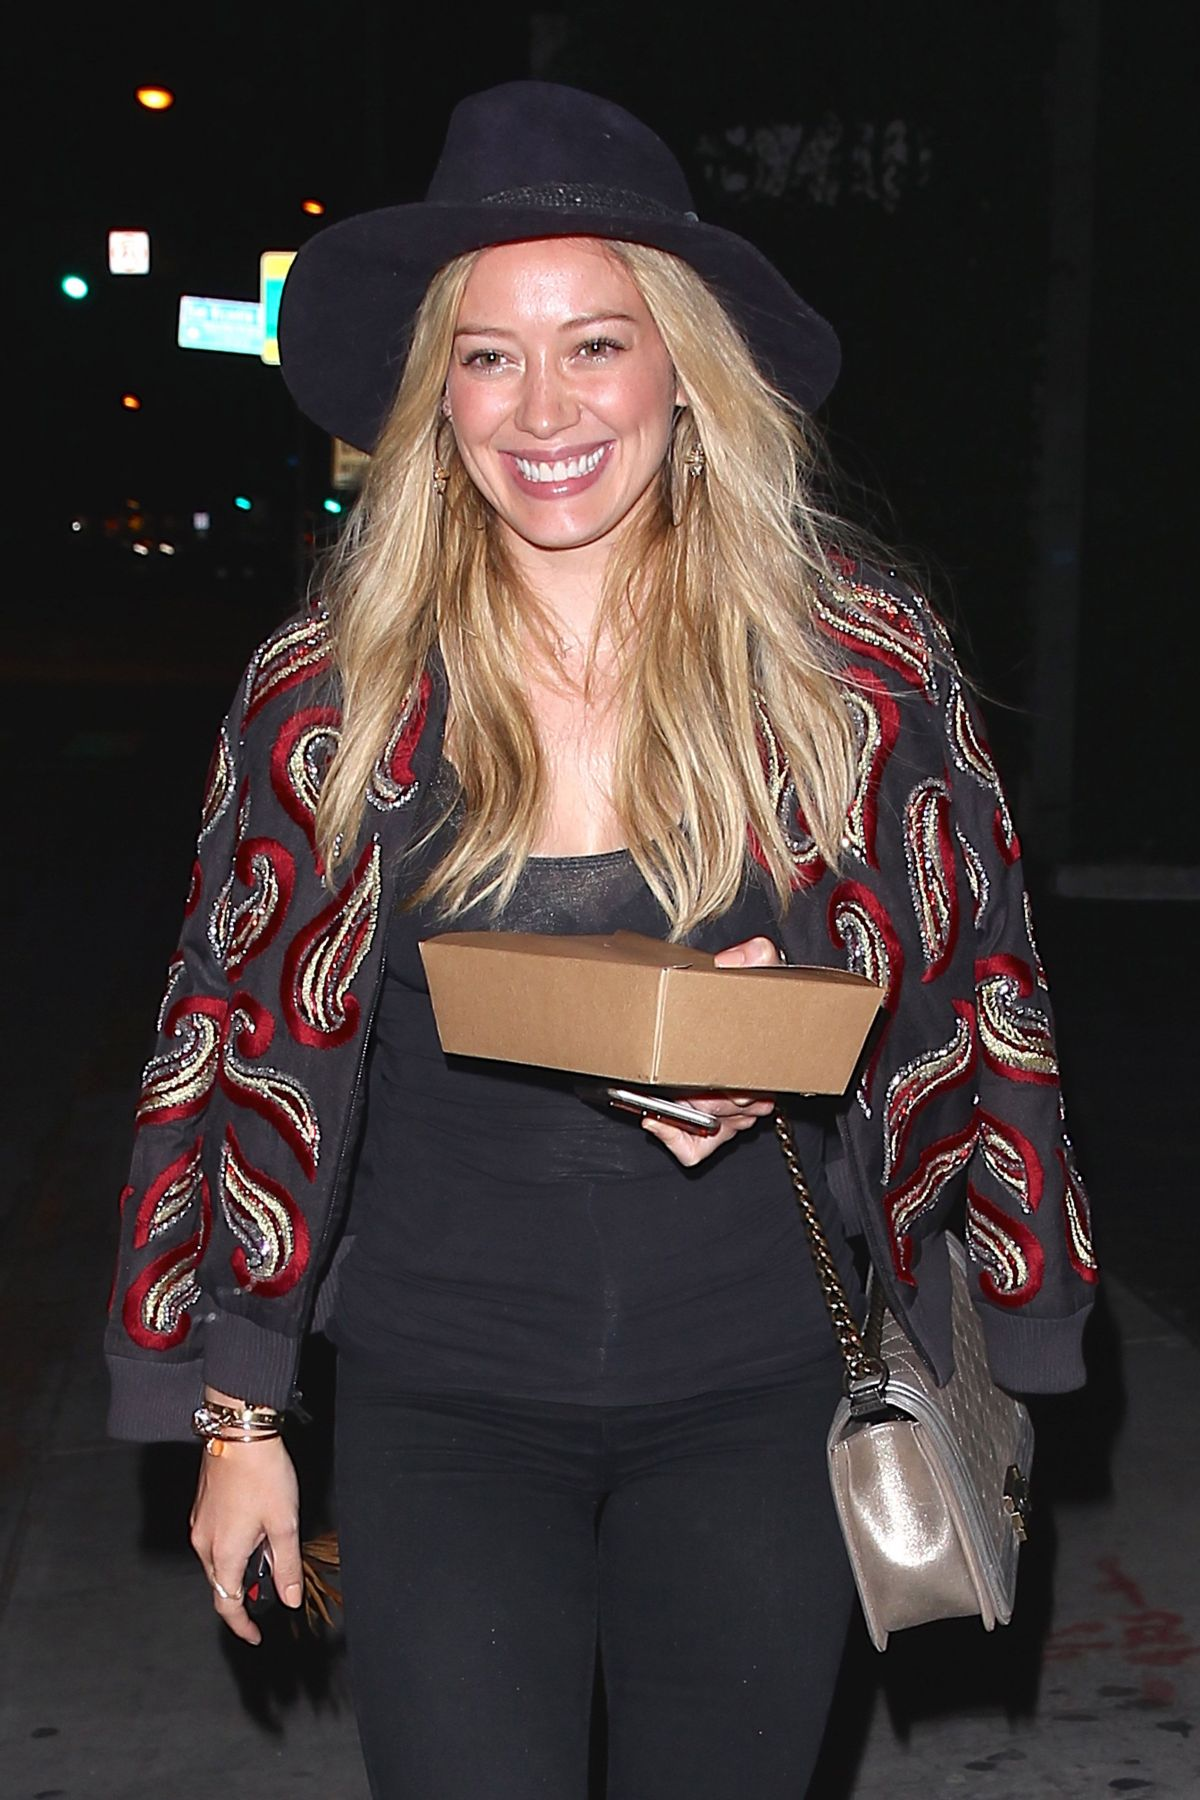 Hilary Duff Leaving Zinque French Restaurant